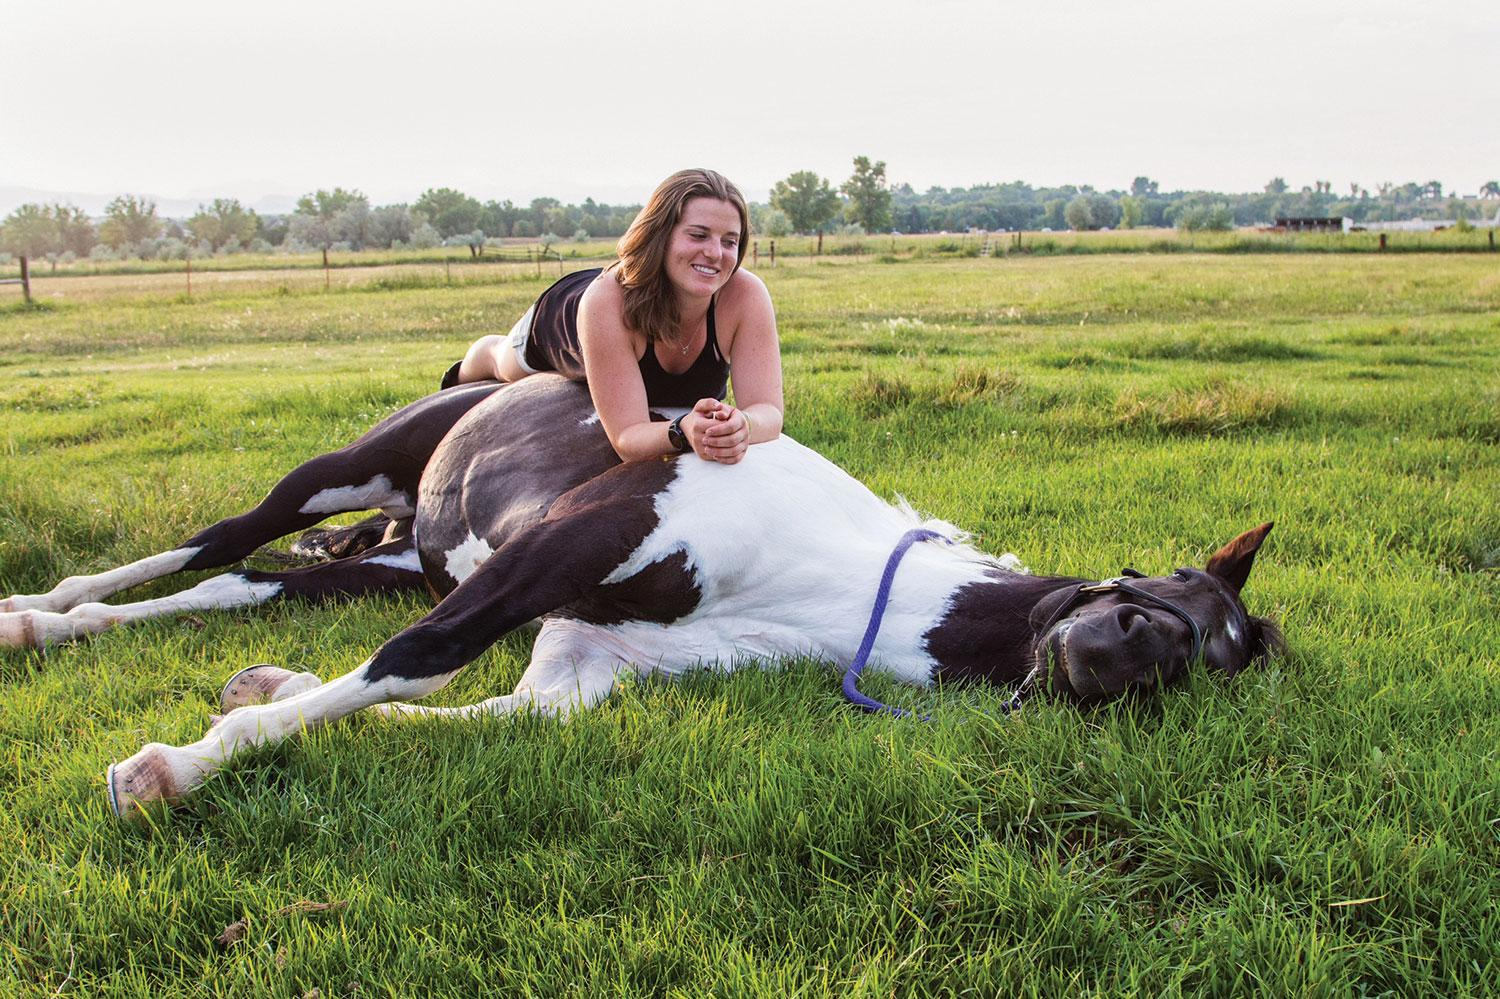 arielle gold and her horse